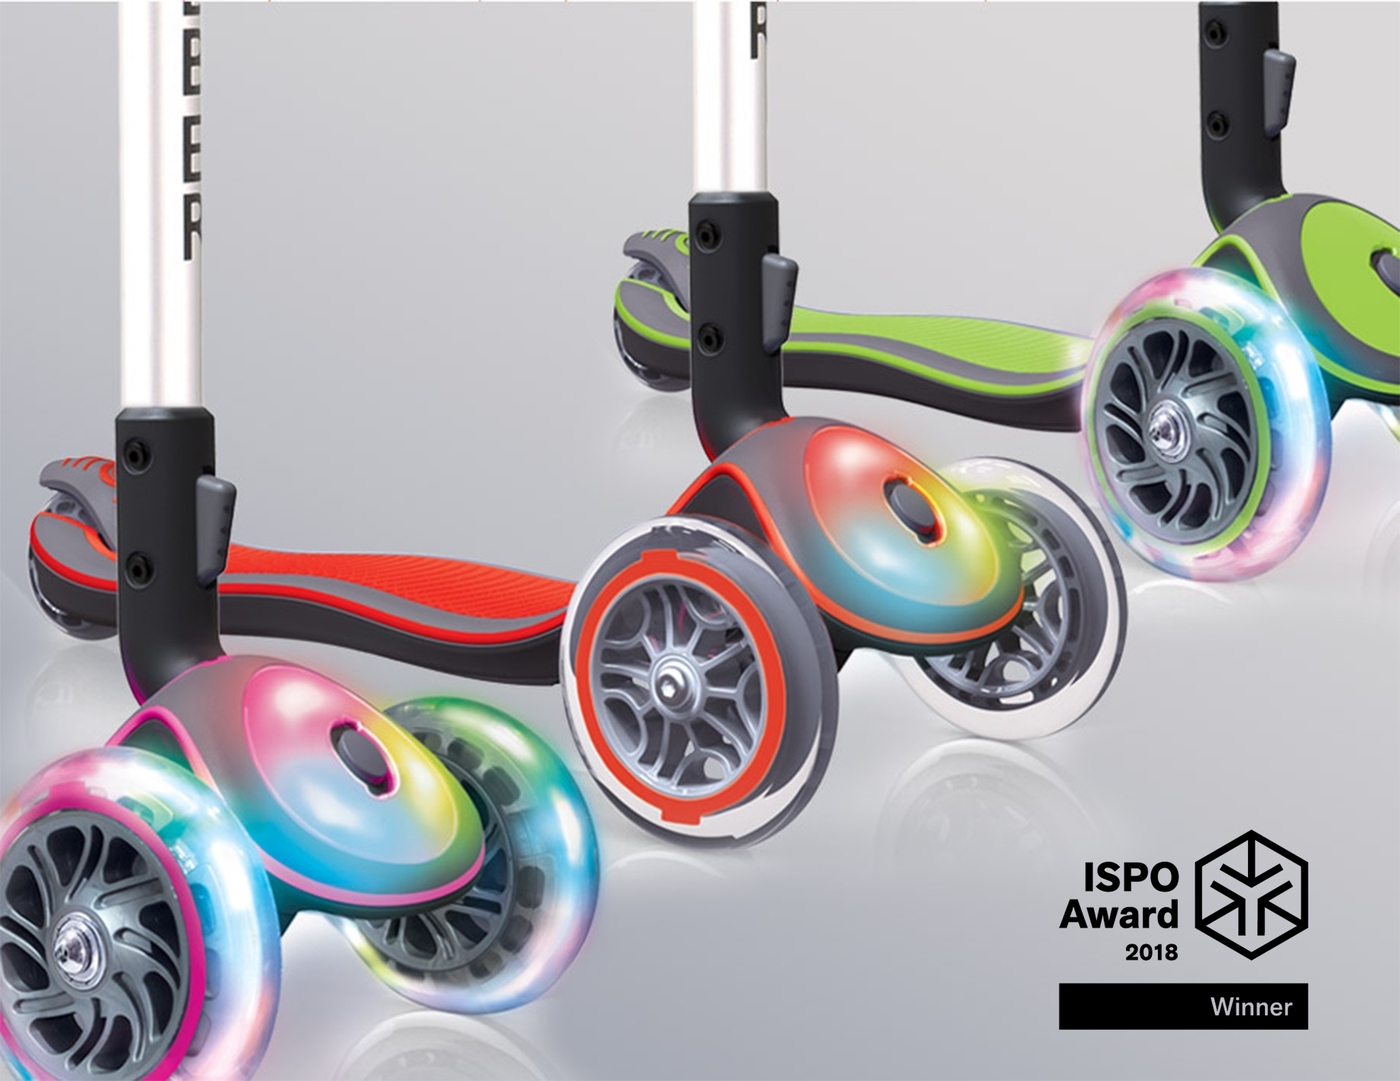 3 light-up scooter styles